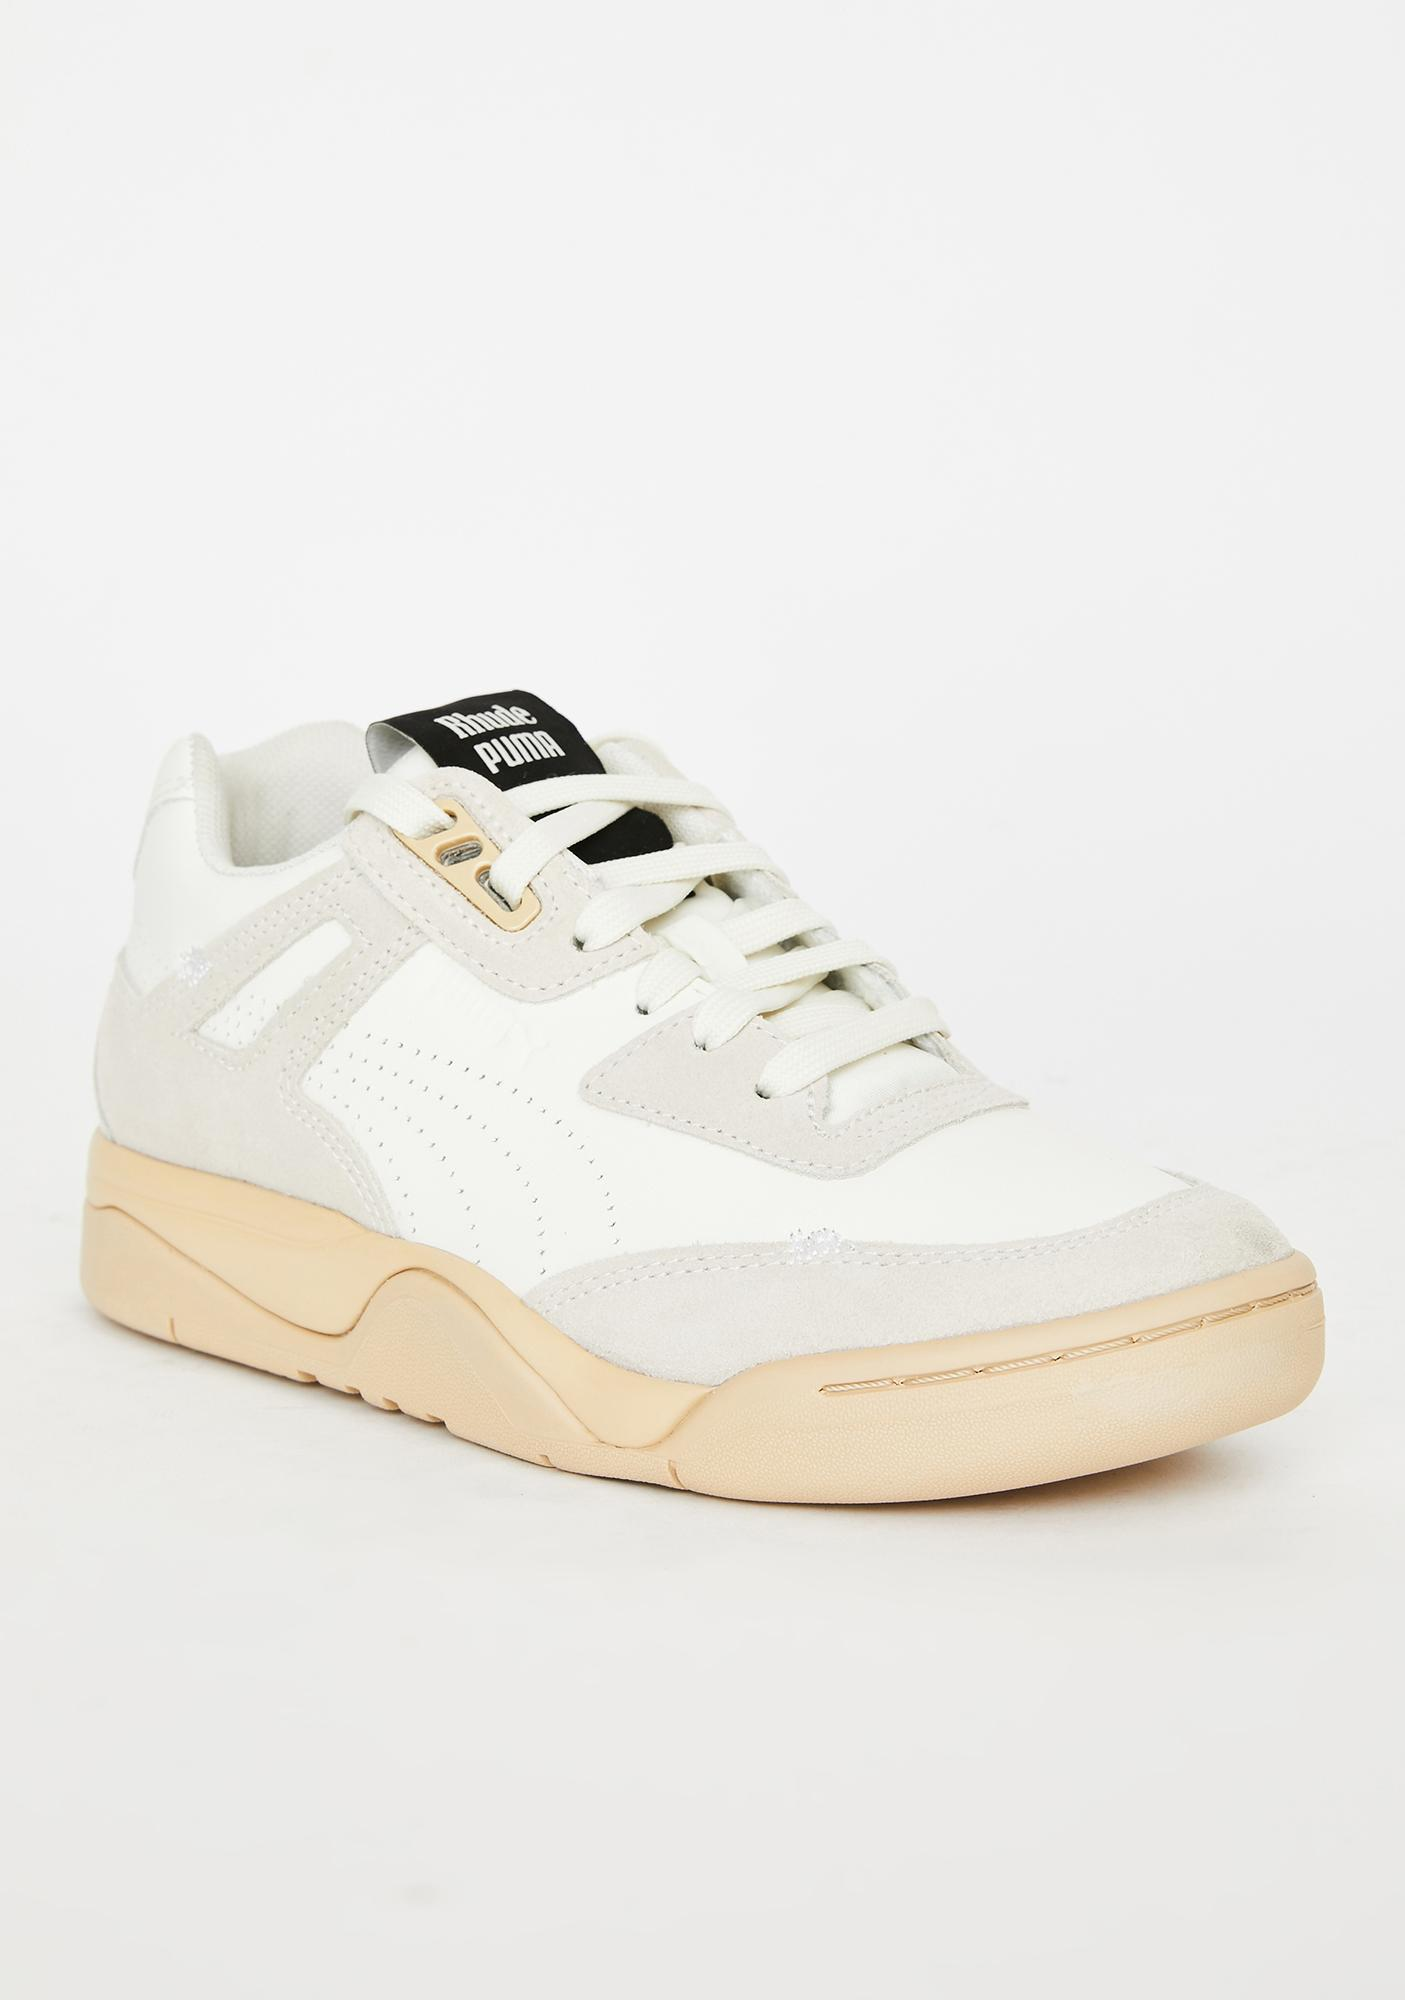 PUMA X Rhude Palace Guard Sneakers